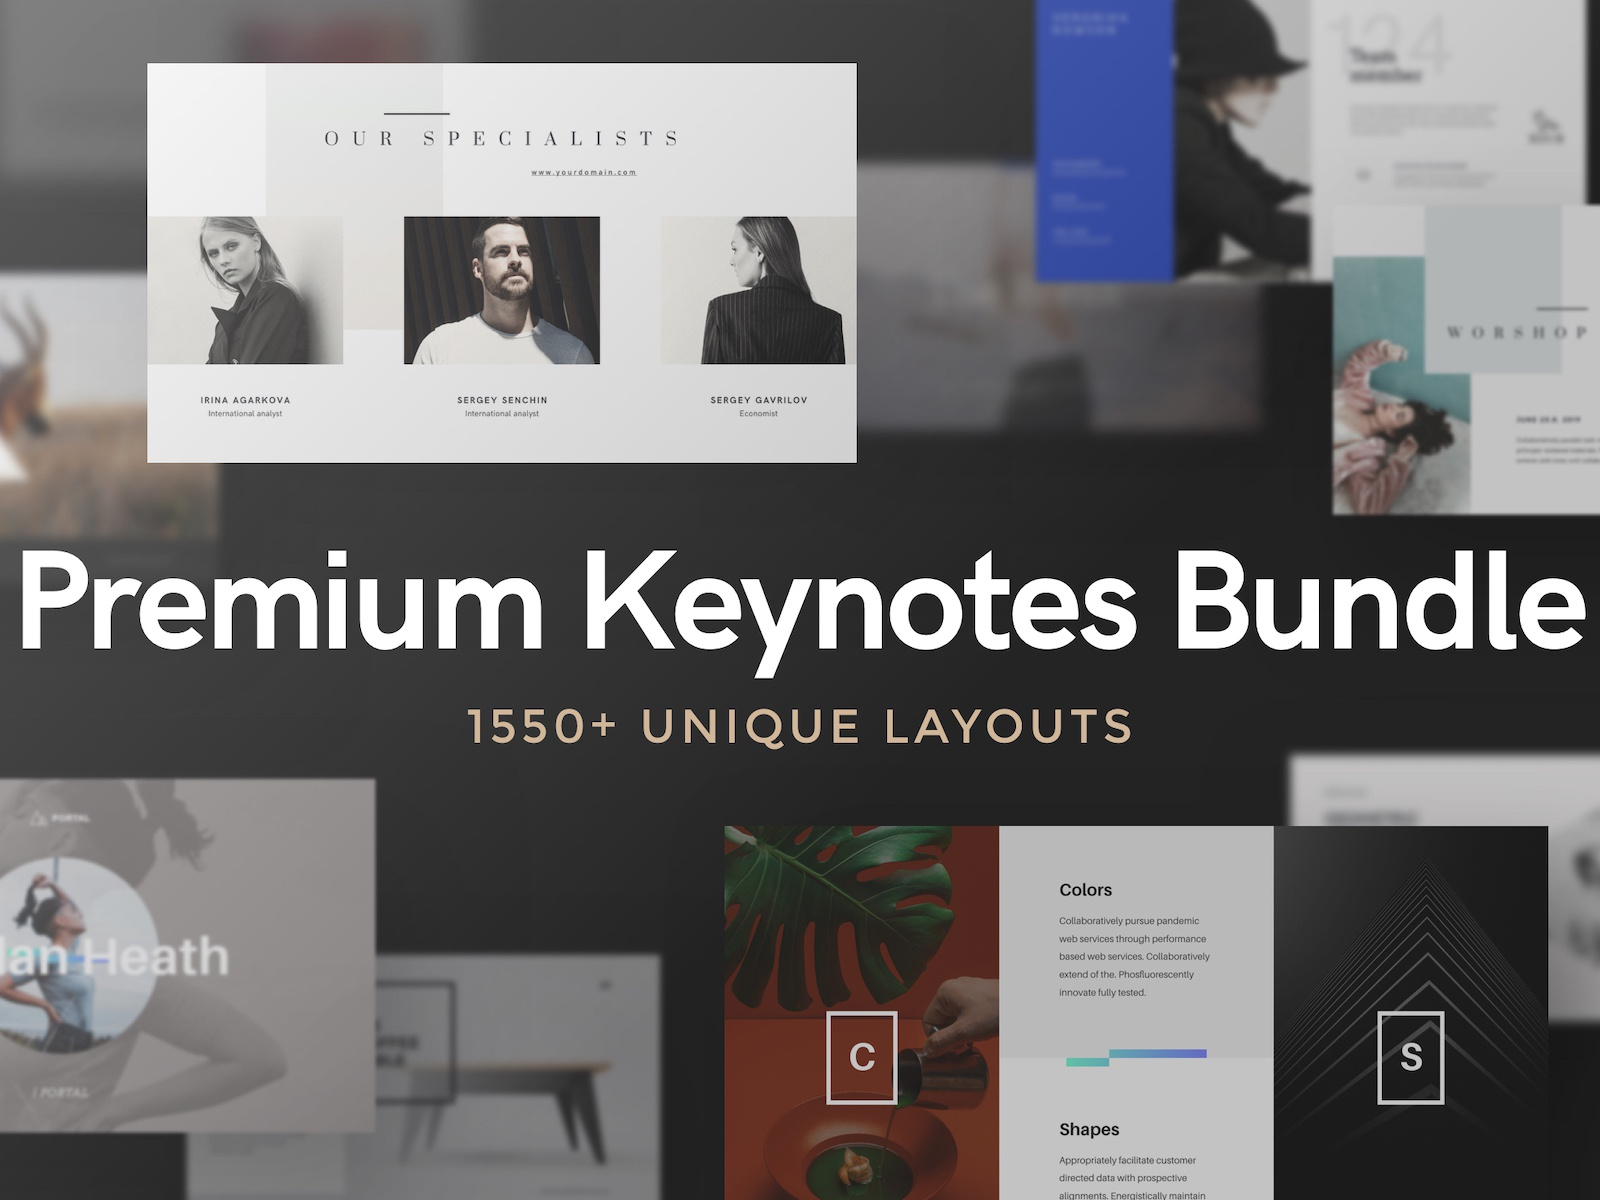 Premium keynotes by goashape cover copy